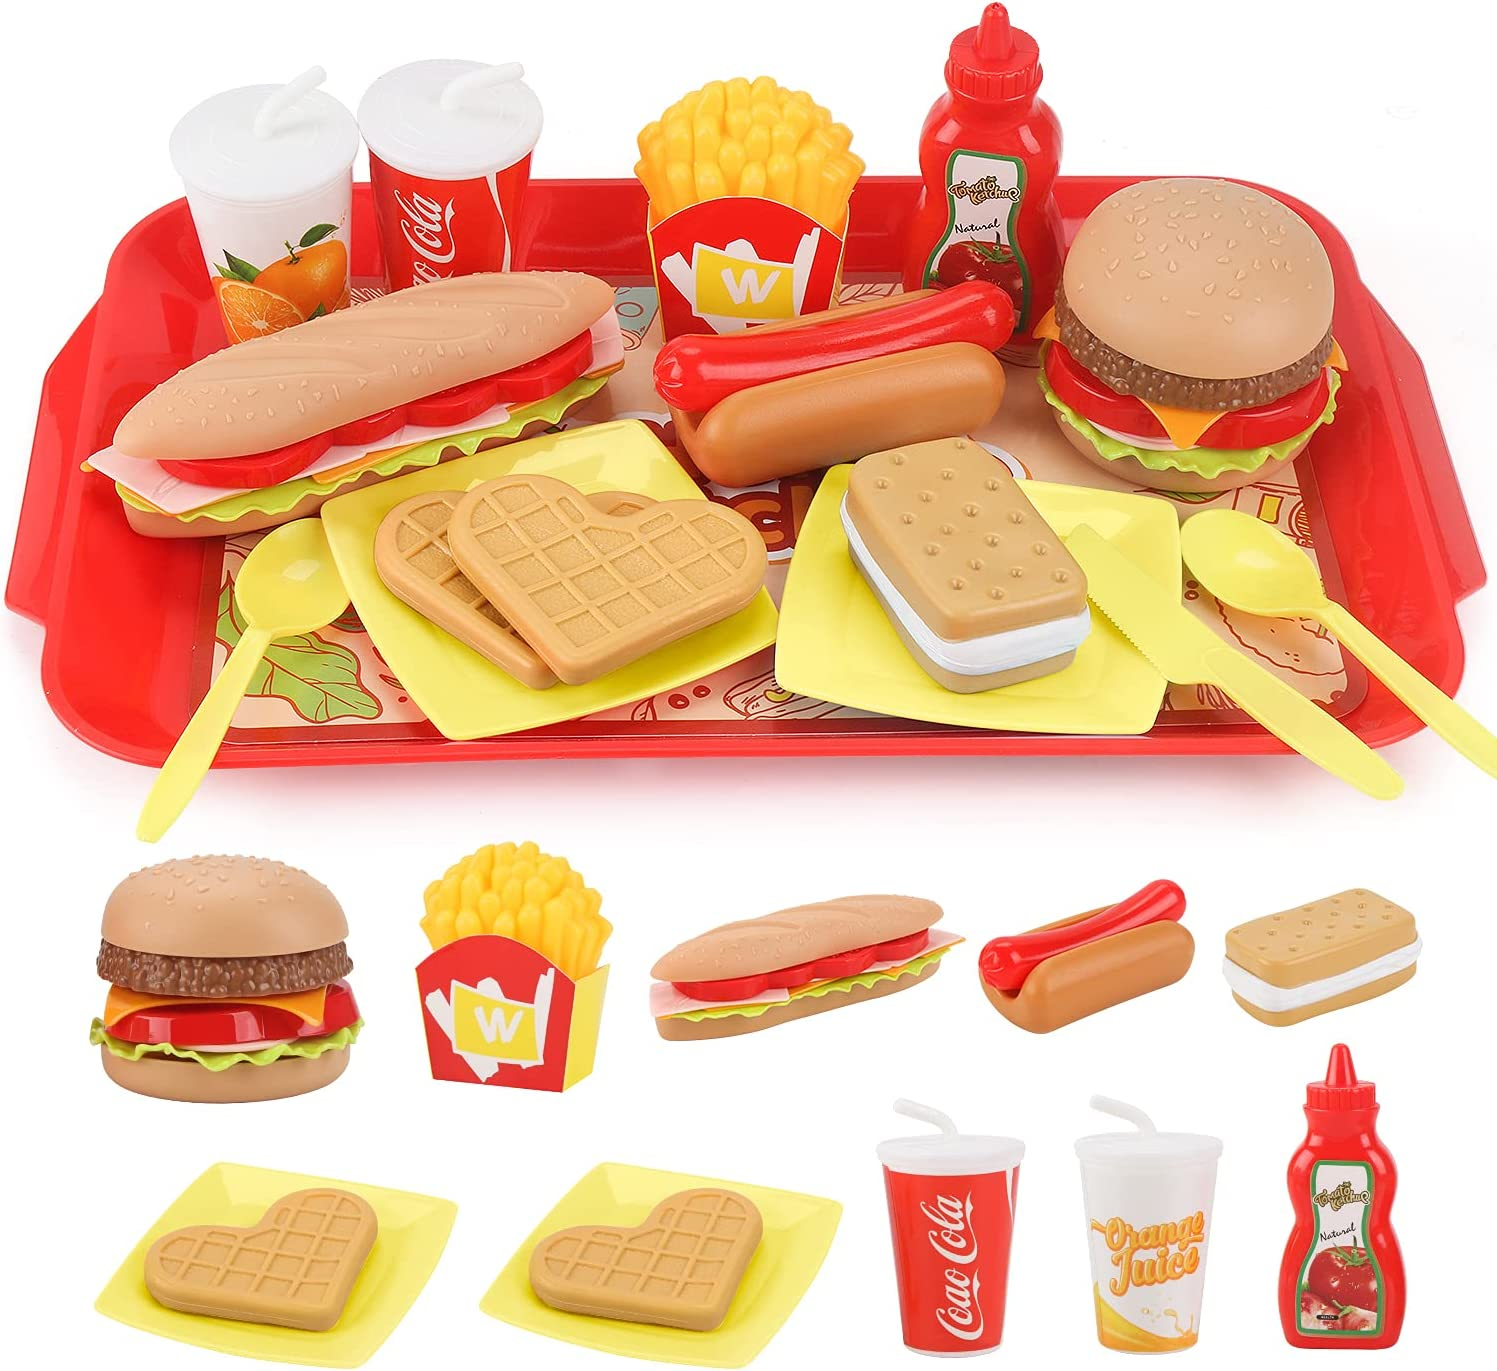 Sotodik Pretend Play Food Set for Children,Removable Fast Food Playset with Tray Hamburger Hotdog Fries Combo,Play Kitchen Accessories Role Play Toys,Educational Gift for Kids Boys Girls (15 Pcs)